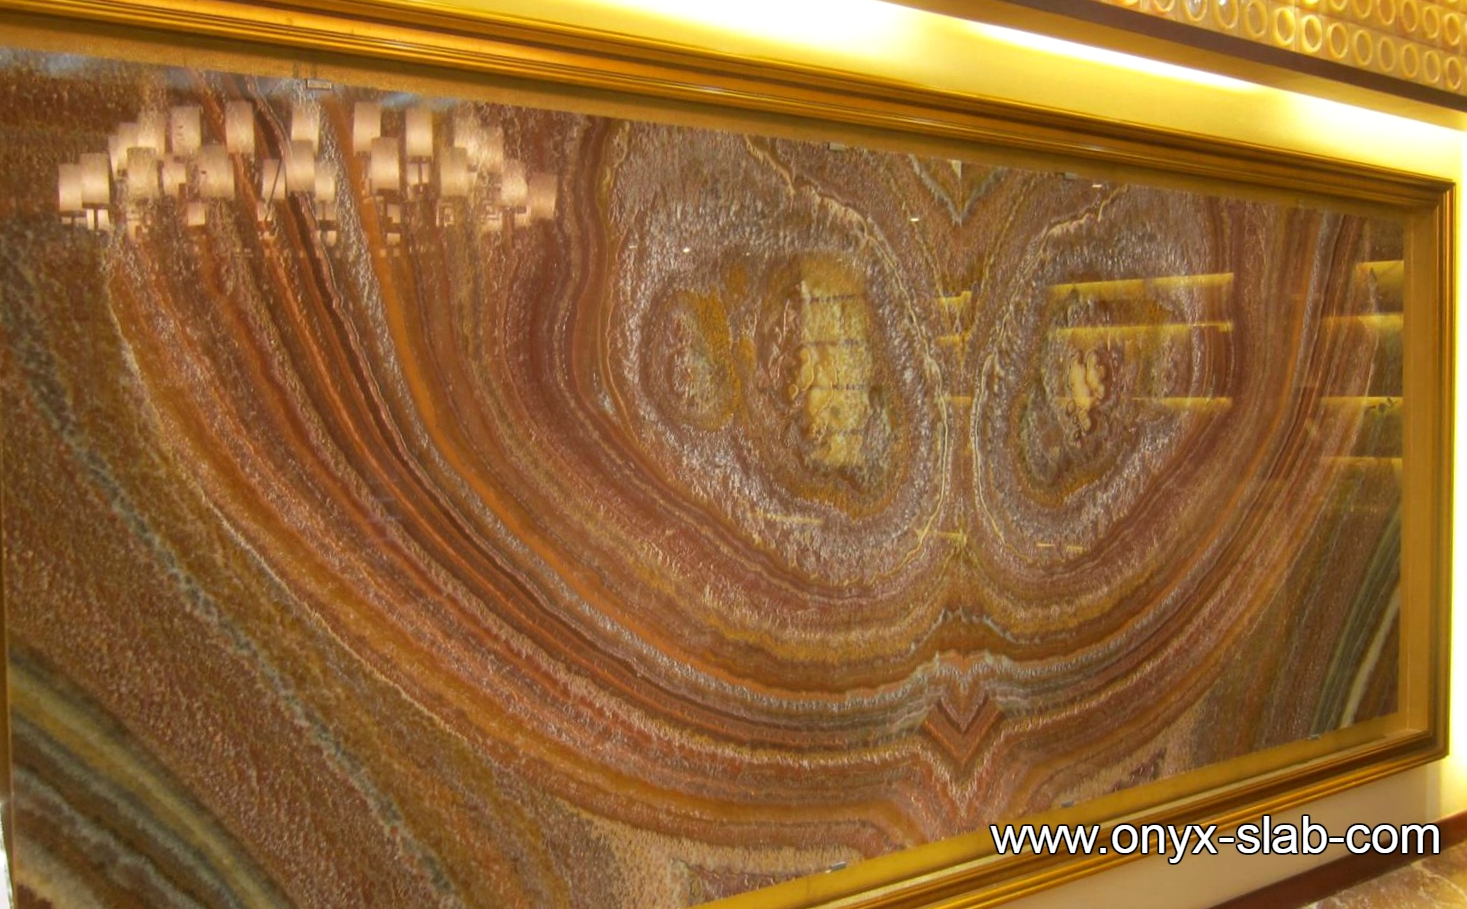 Onyx Slabs, red onyx slabs, Onyx Slabs Price, onyx stone slabs for sale, onyx slab cost, onyx countertops Price, bookmatched onyx slabs